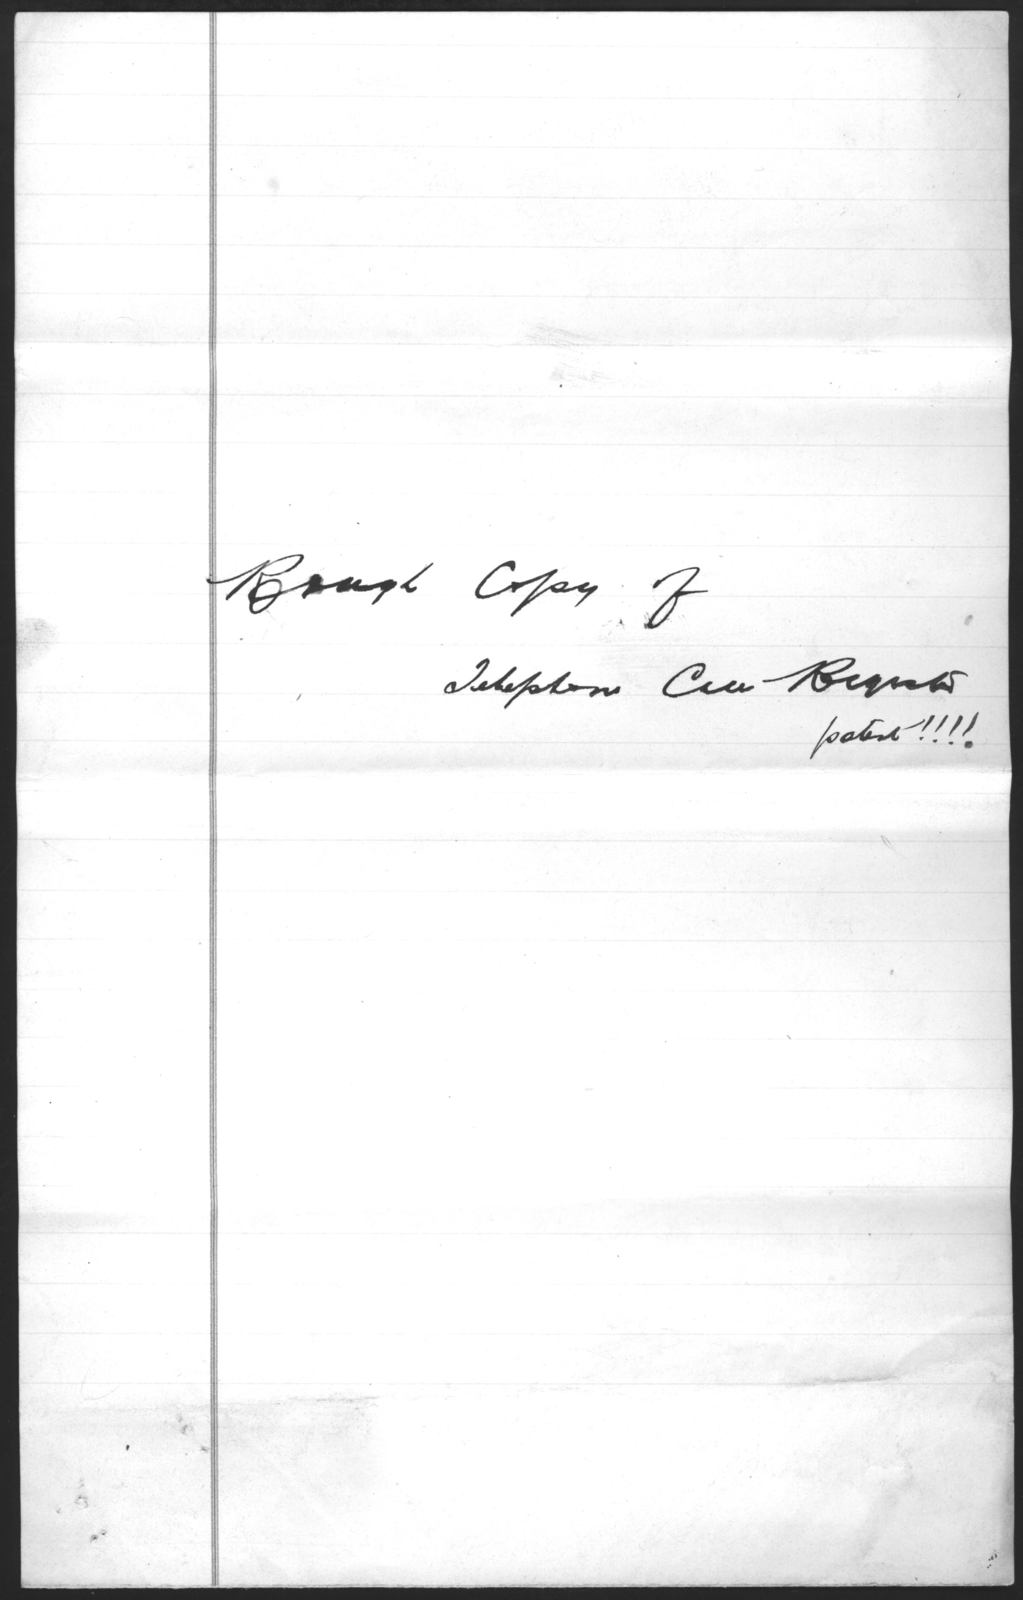 Draft application, undated